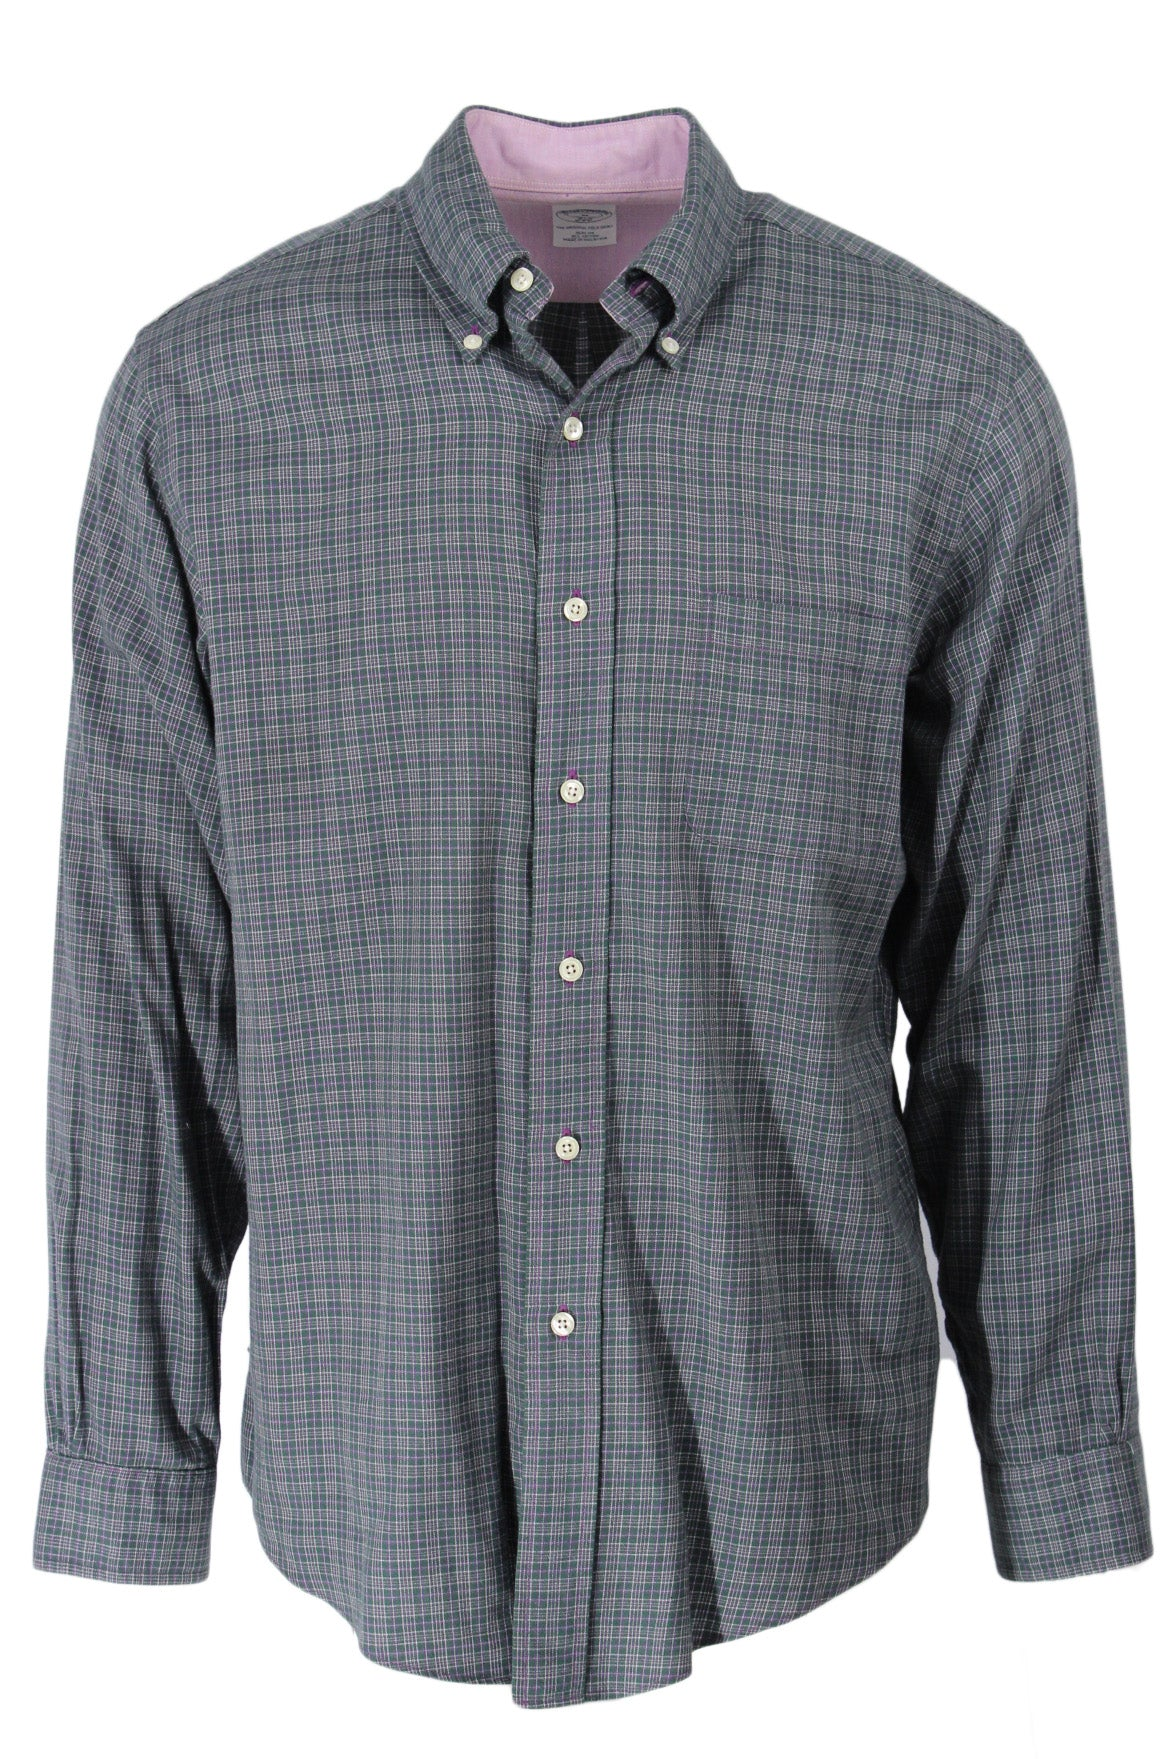 brooks brothers plaid button down dress shirt. features green plaid exterior, long sleeves, purple stitching and white buttons.